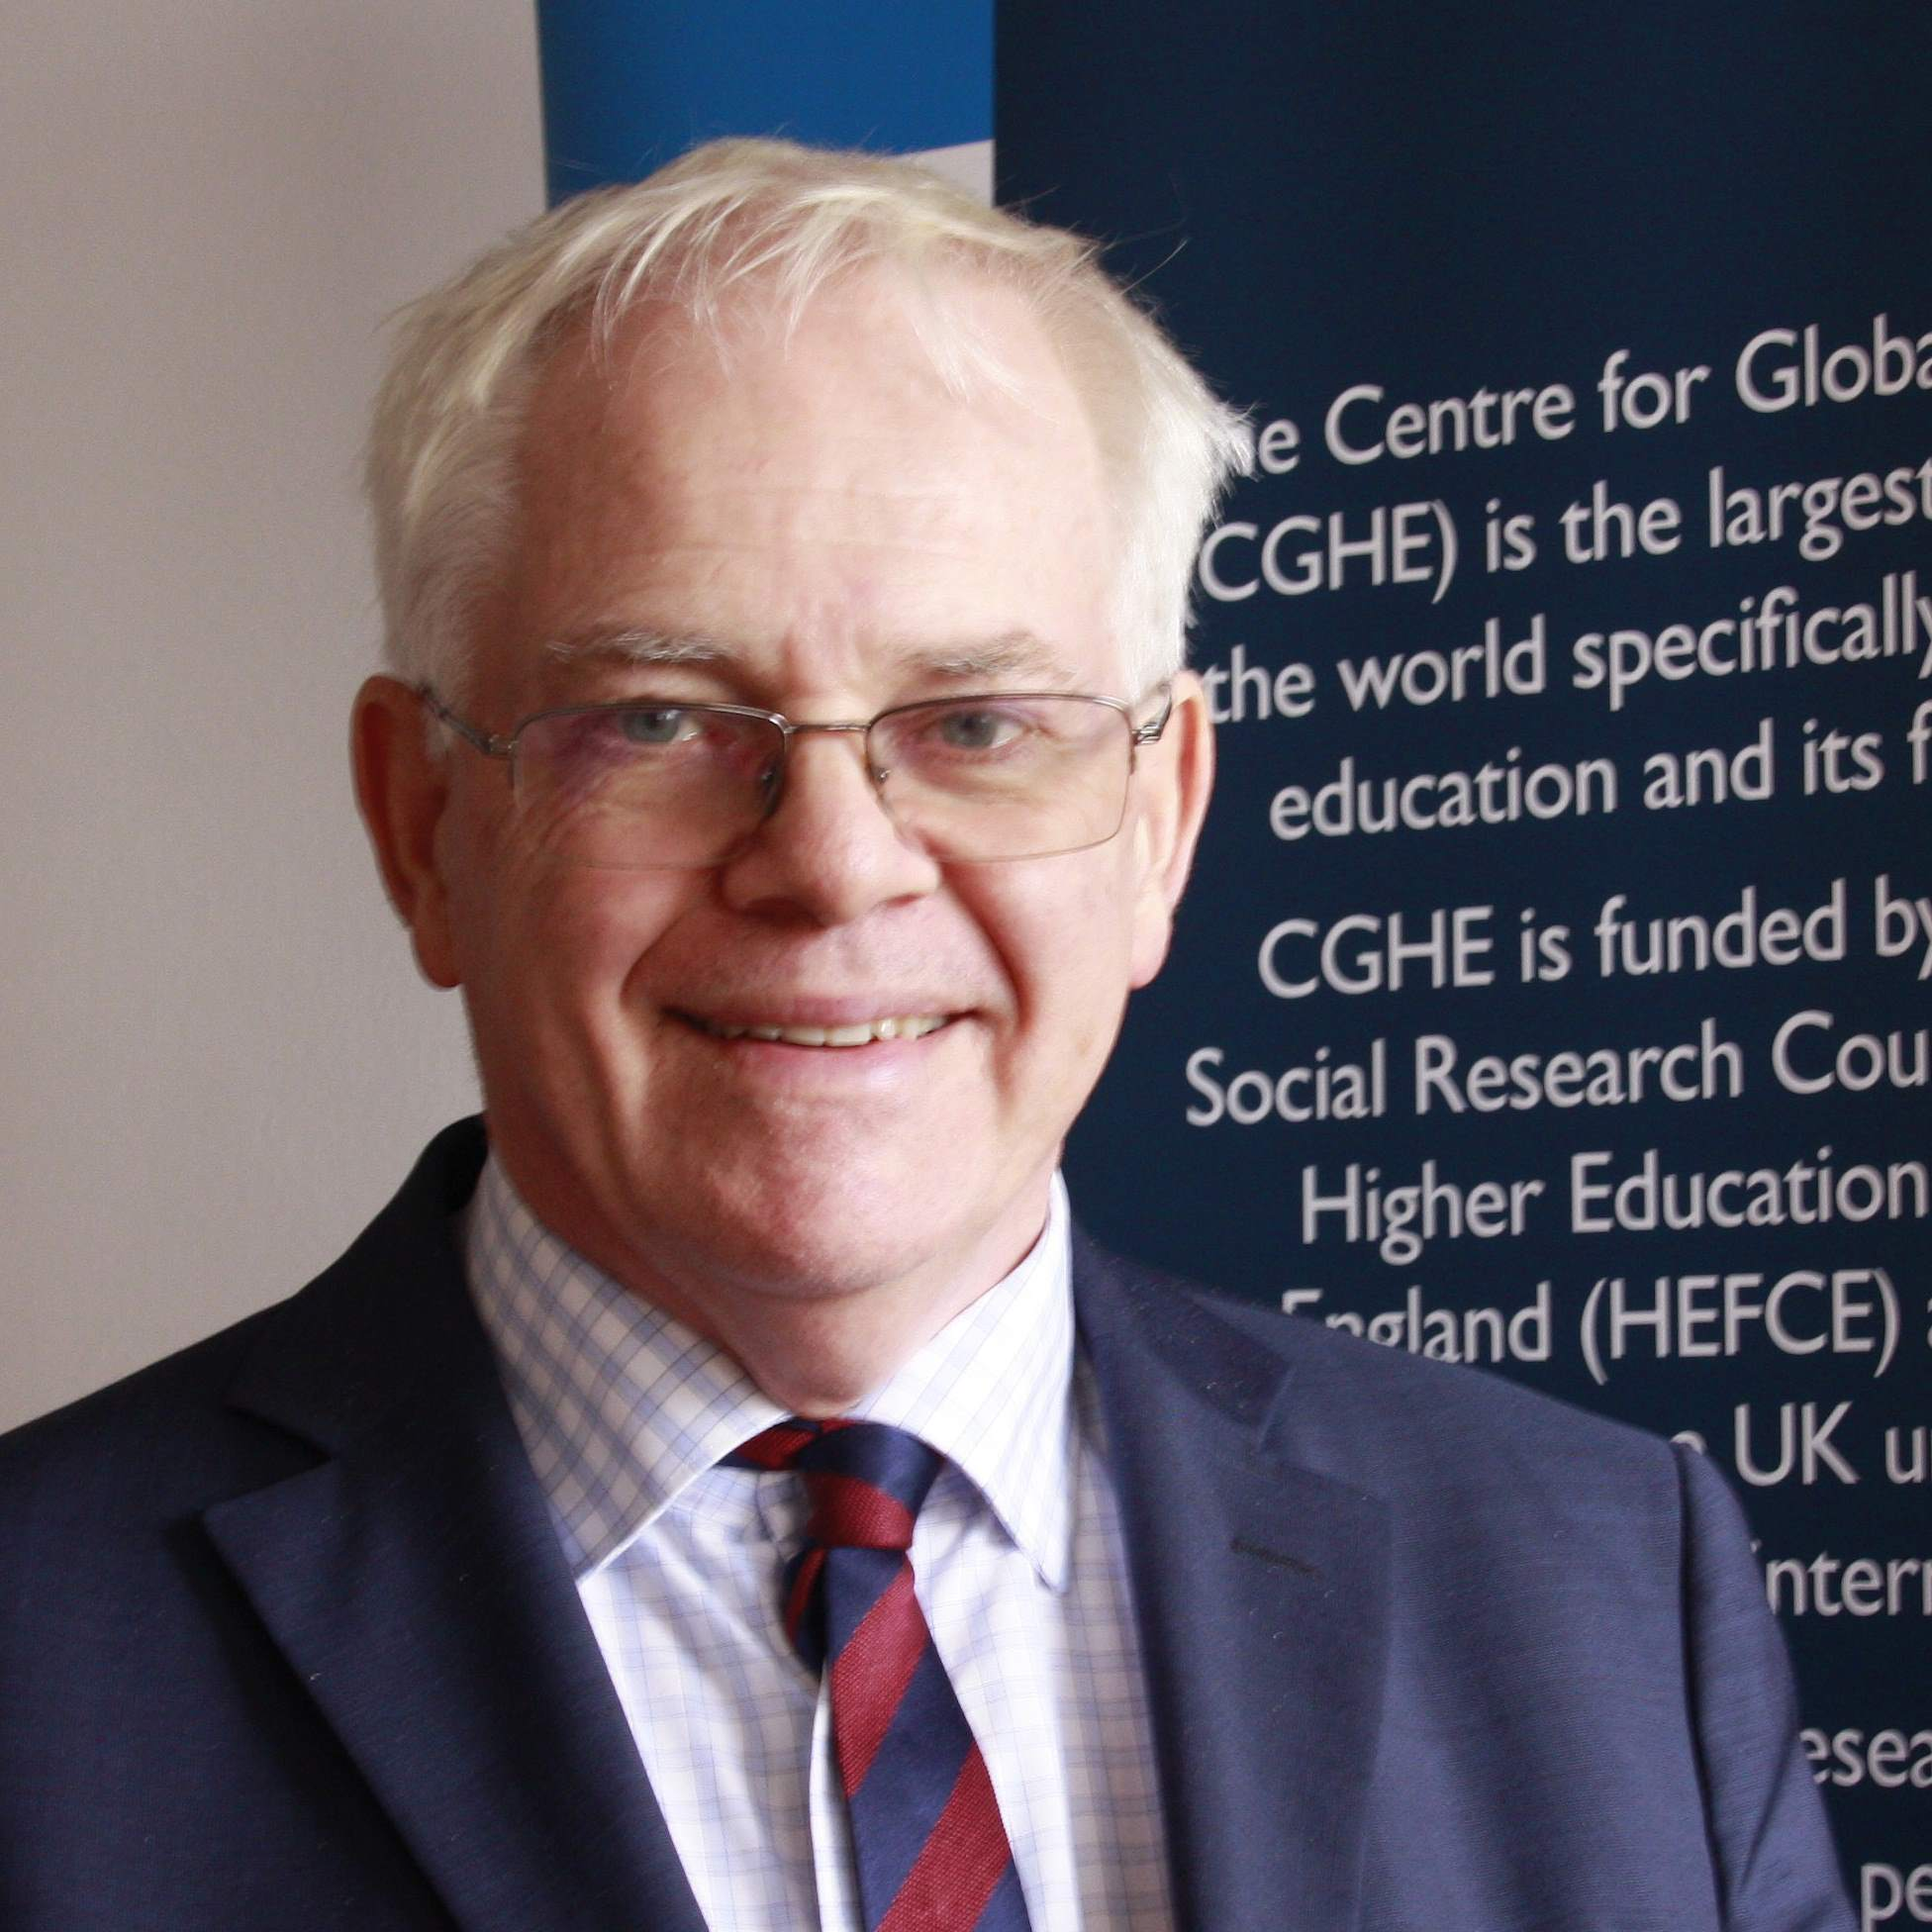 Professor Simon Marginson